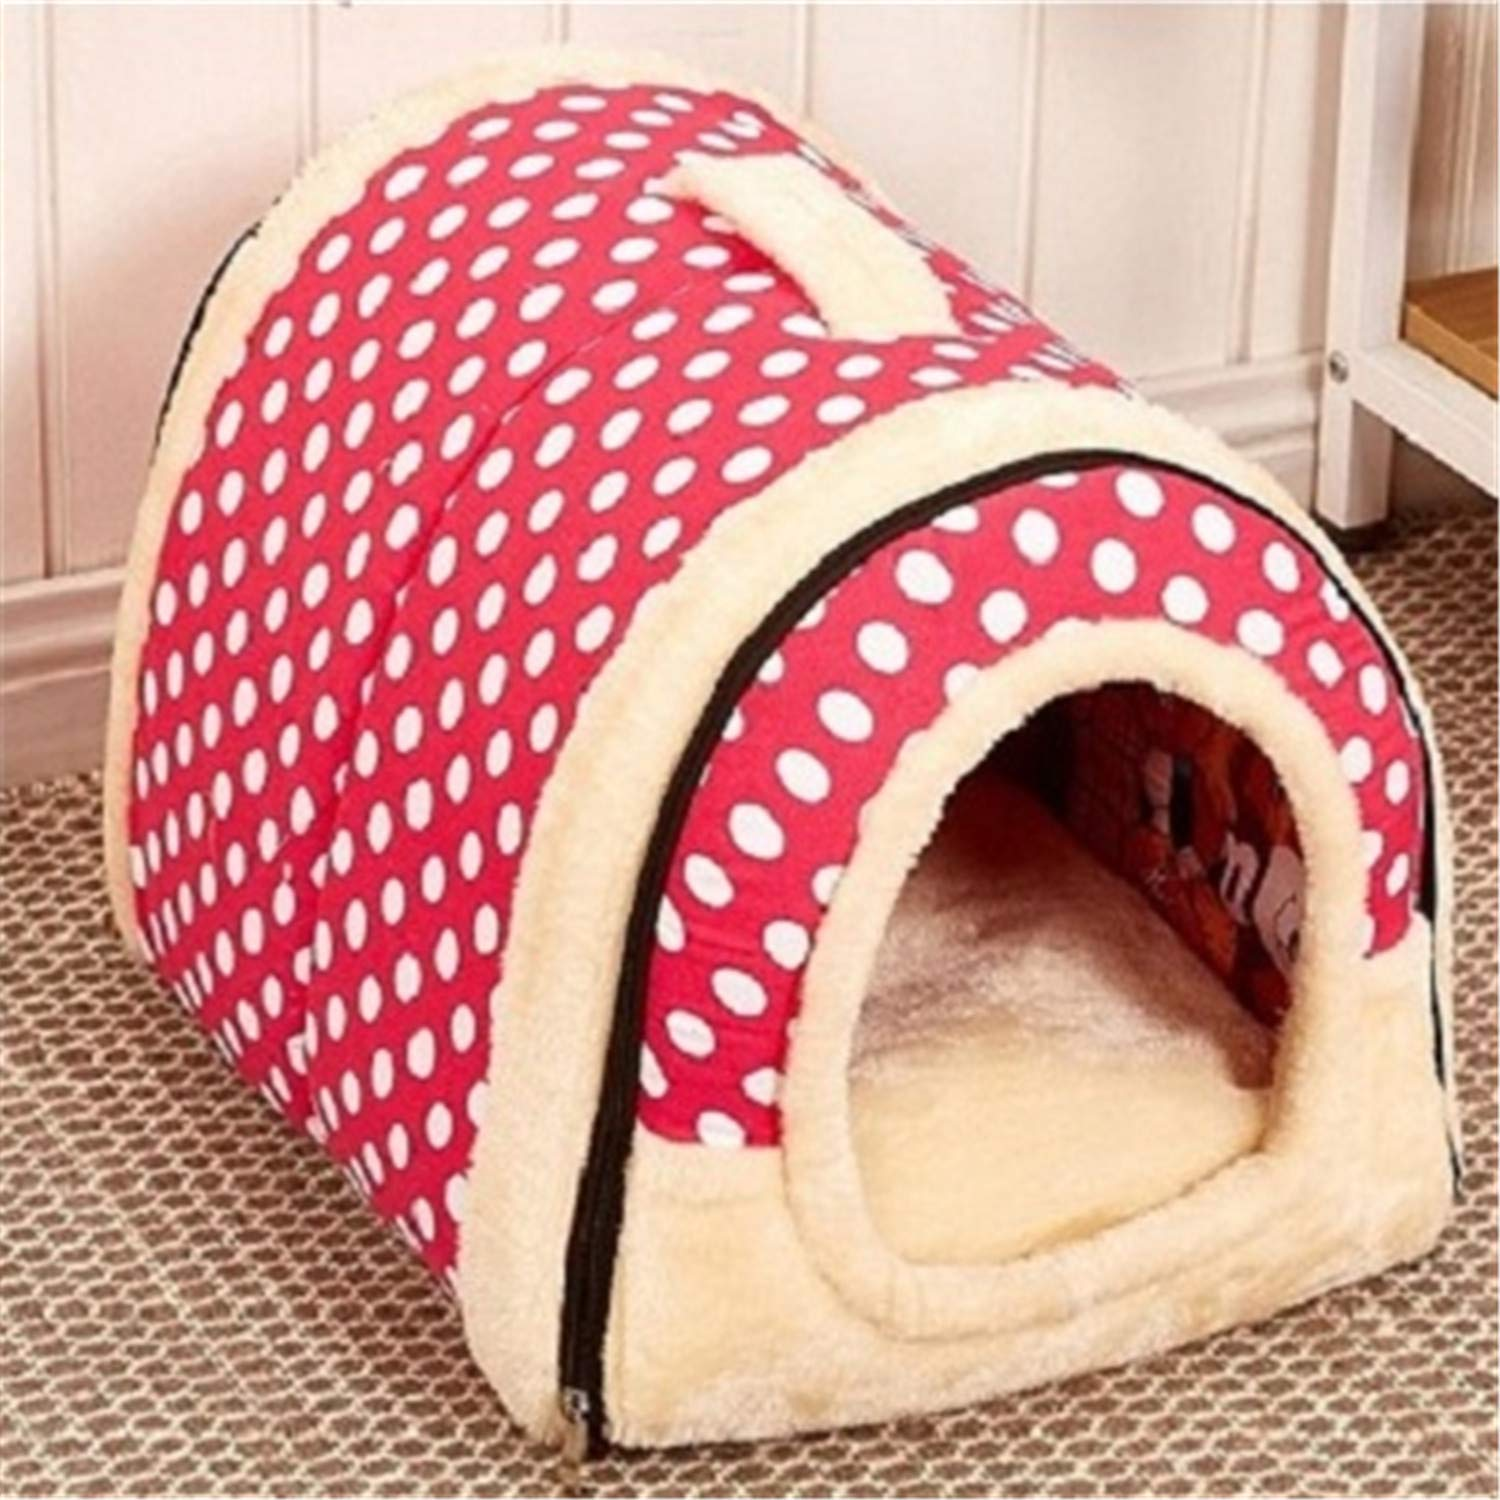 As The Picture-5 L As The Picture-5 L Pet Dog House Nest with Mat Foldable Pet Dog Bed Cat Bed House for Small Medium Dogs Travel Kennels for Cats Pet Products